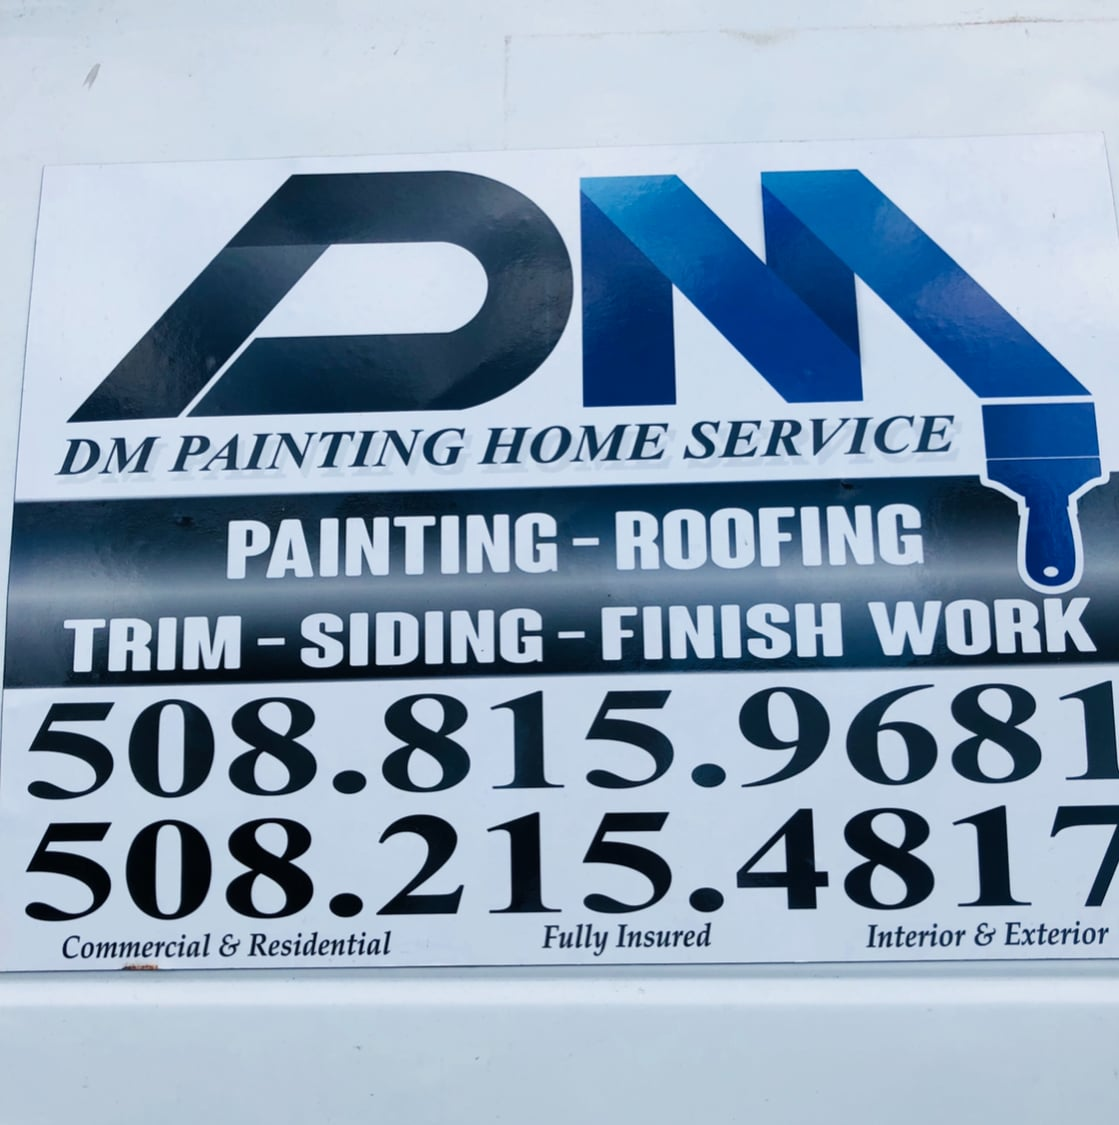 DM PAINTING AND HOME SERVICE